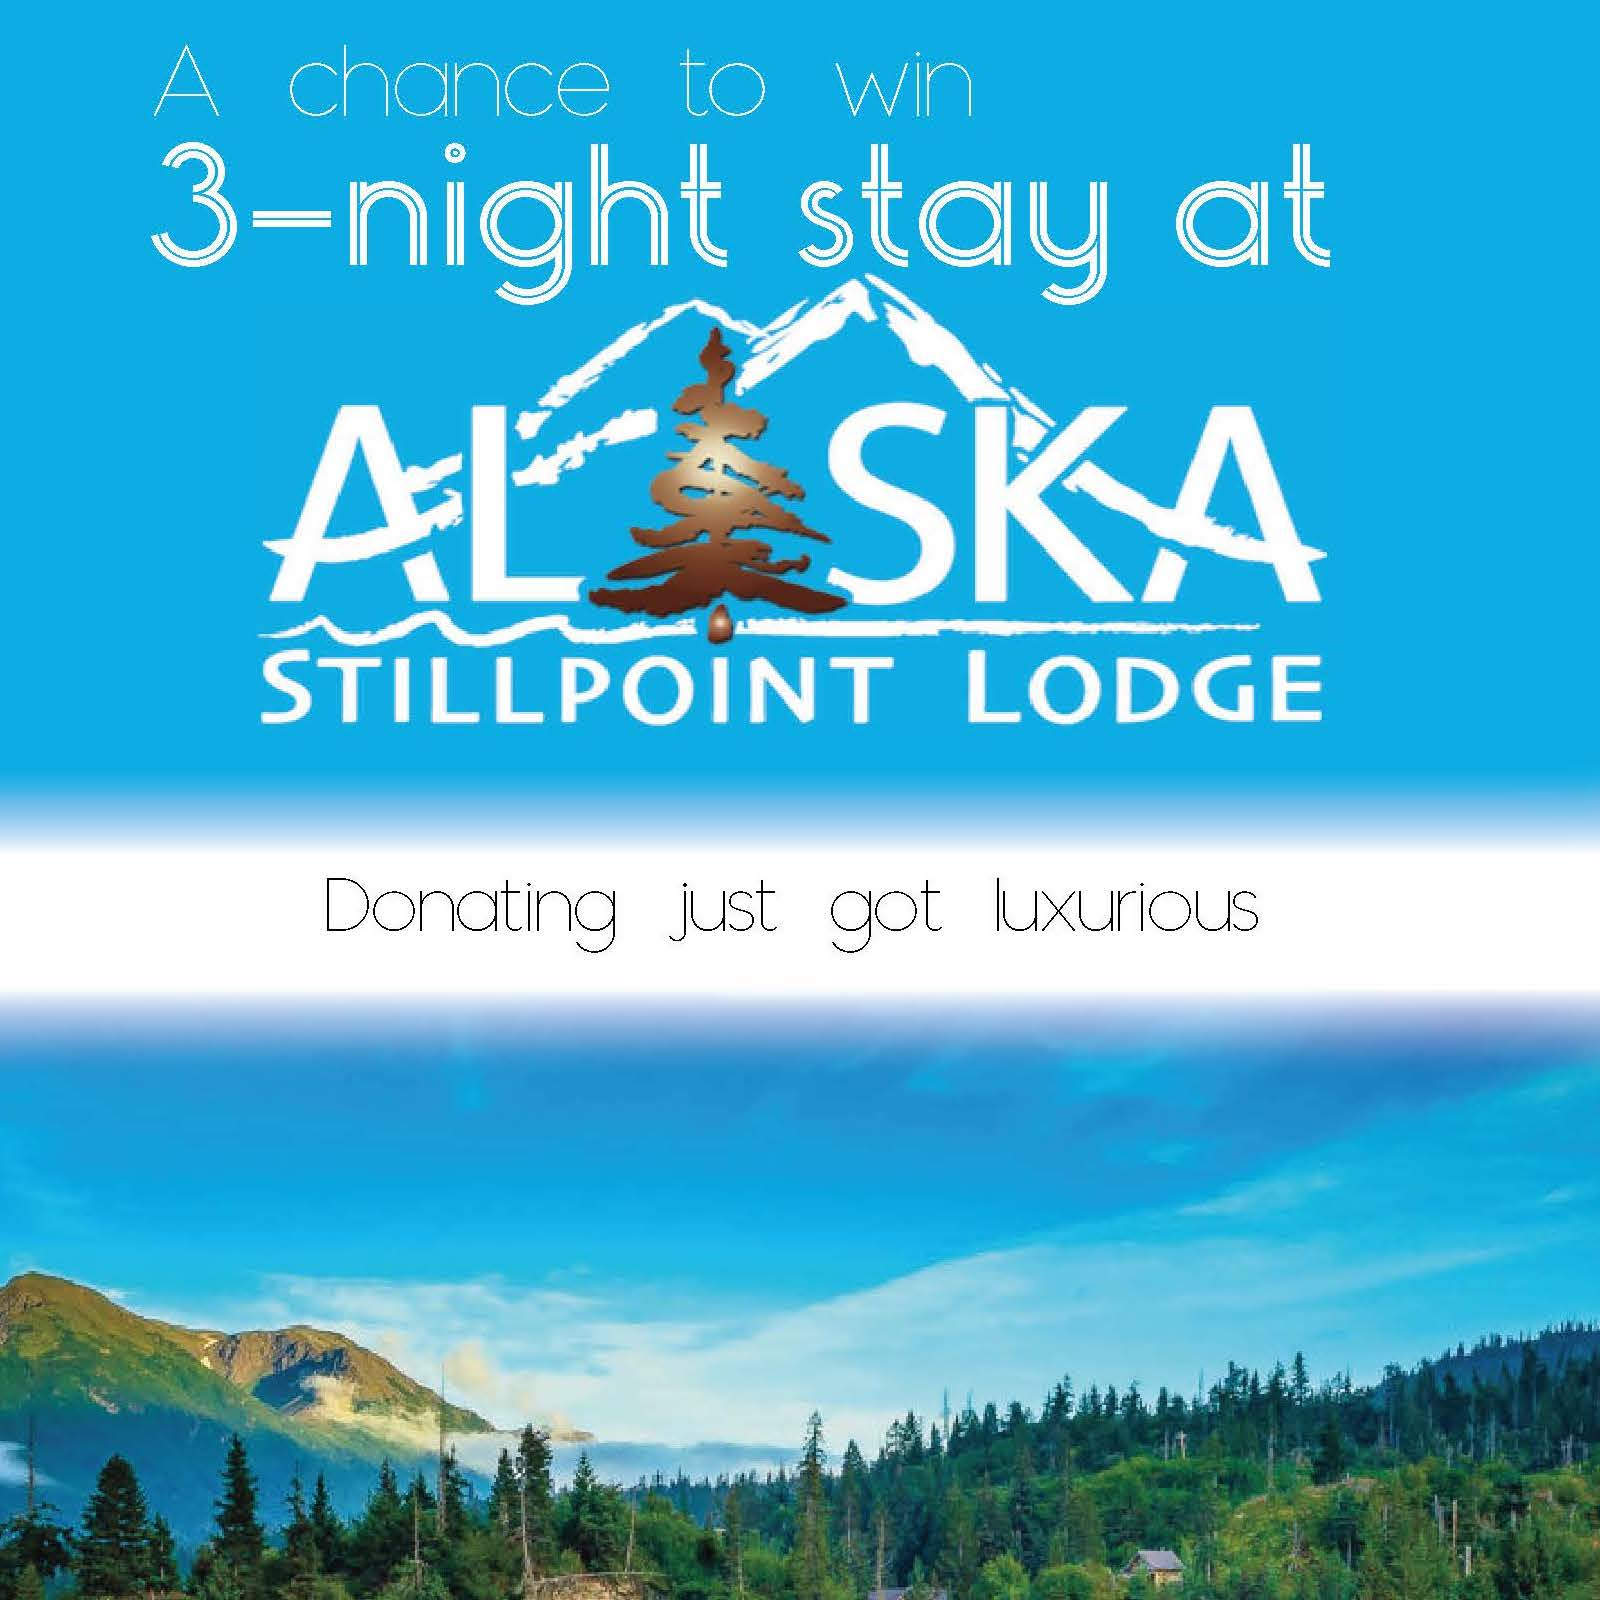 Enter To Win 3-night Stay With Stillpoint Lodge